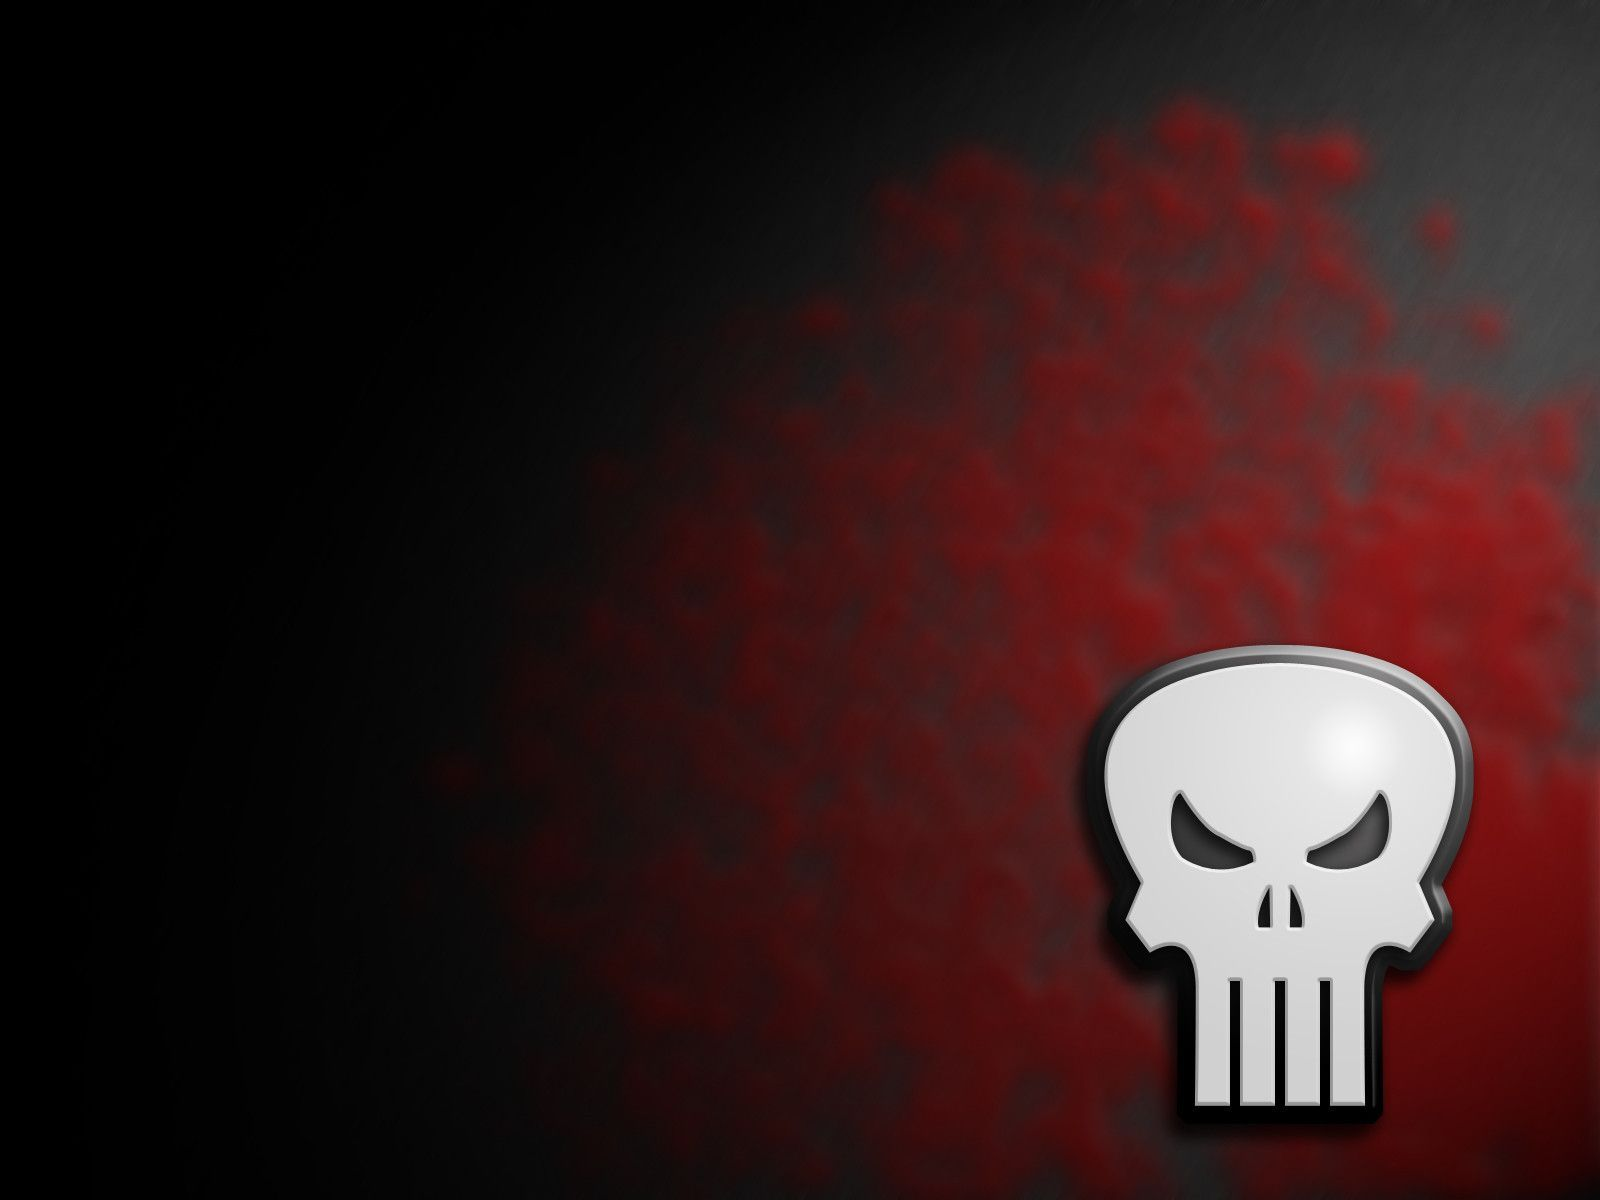 The punisher hd wallpapers backgrounds wallpaper 16001200 the punisher hd wallpapers backgrounds wallpaper 16001200 punisher backgrounds 37 wallpapers voltagebd Images